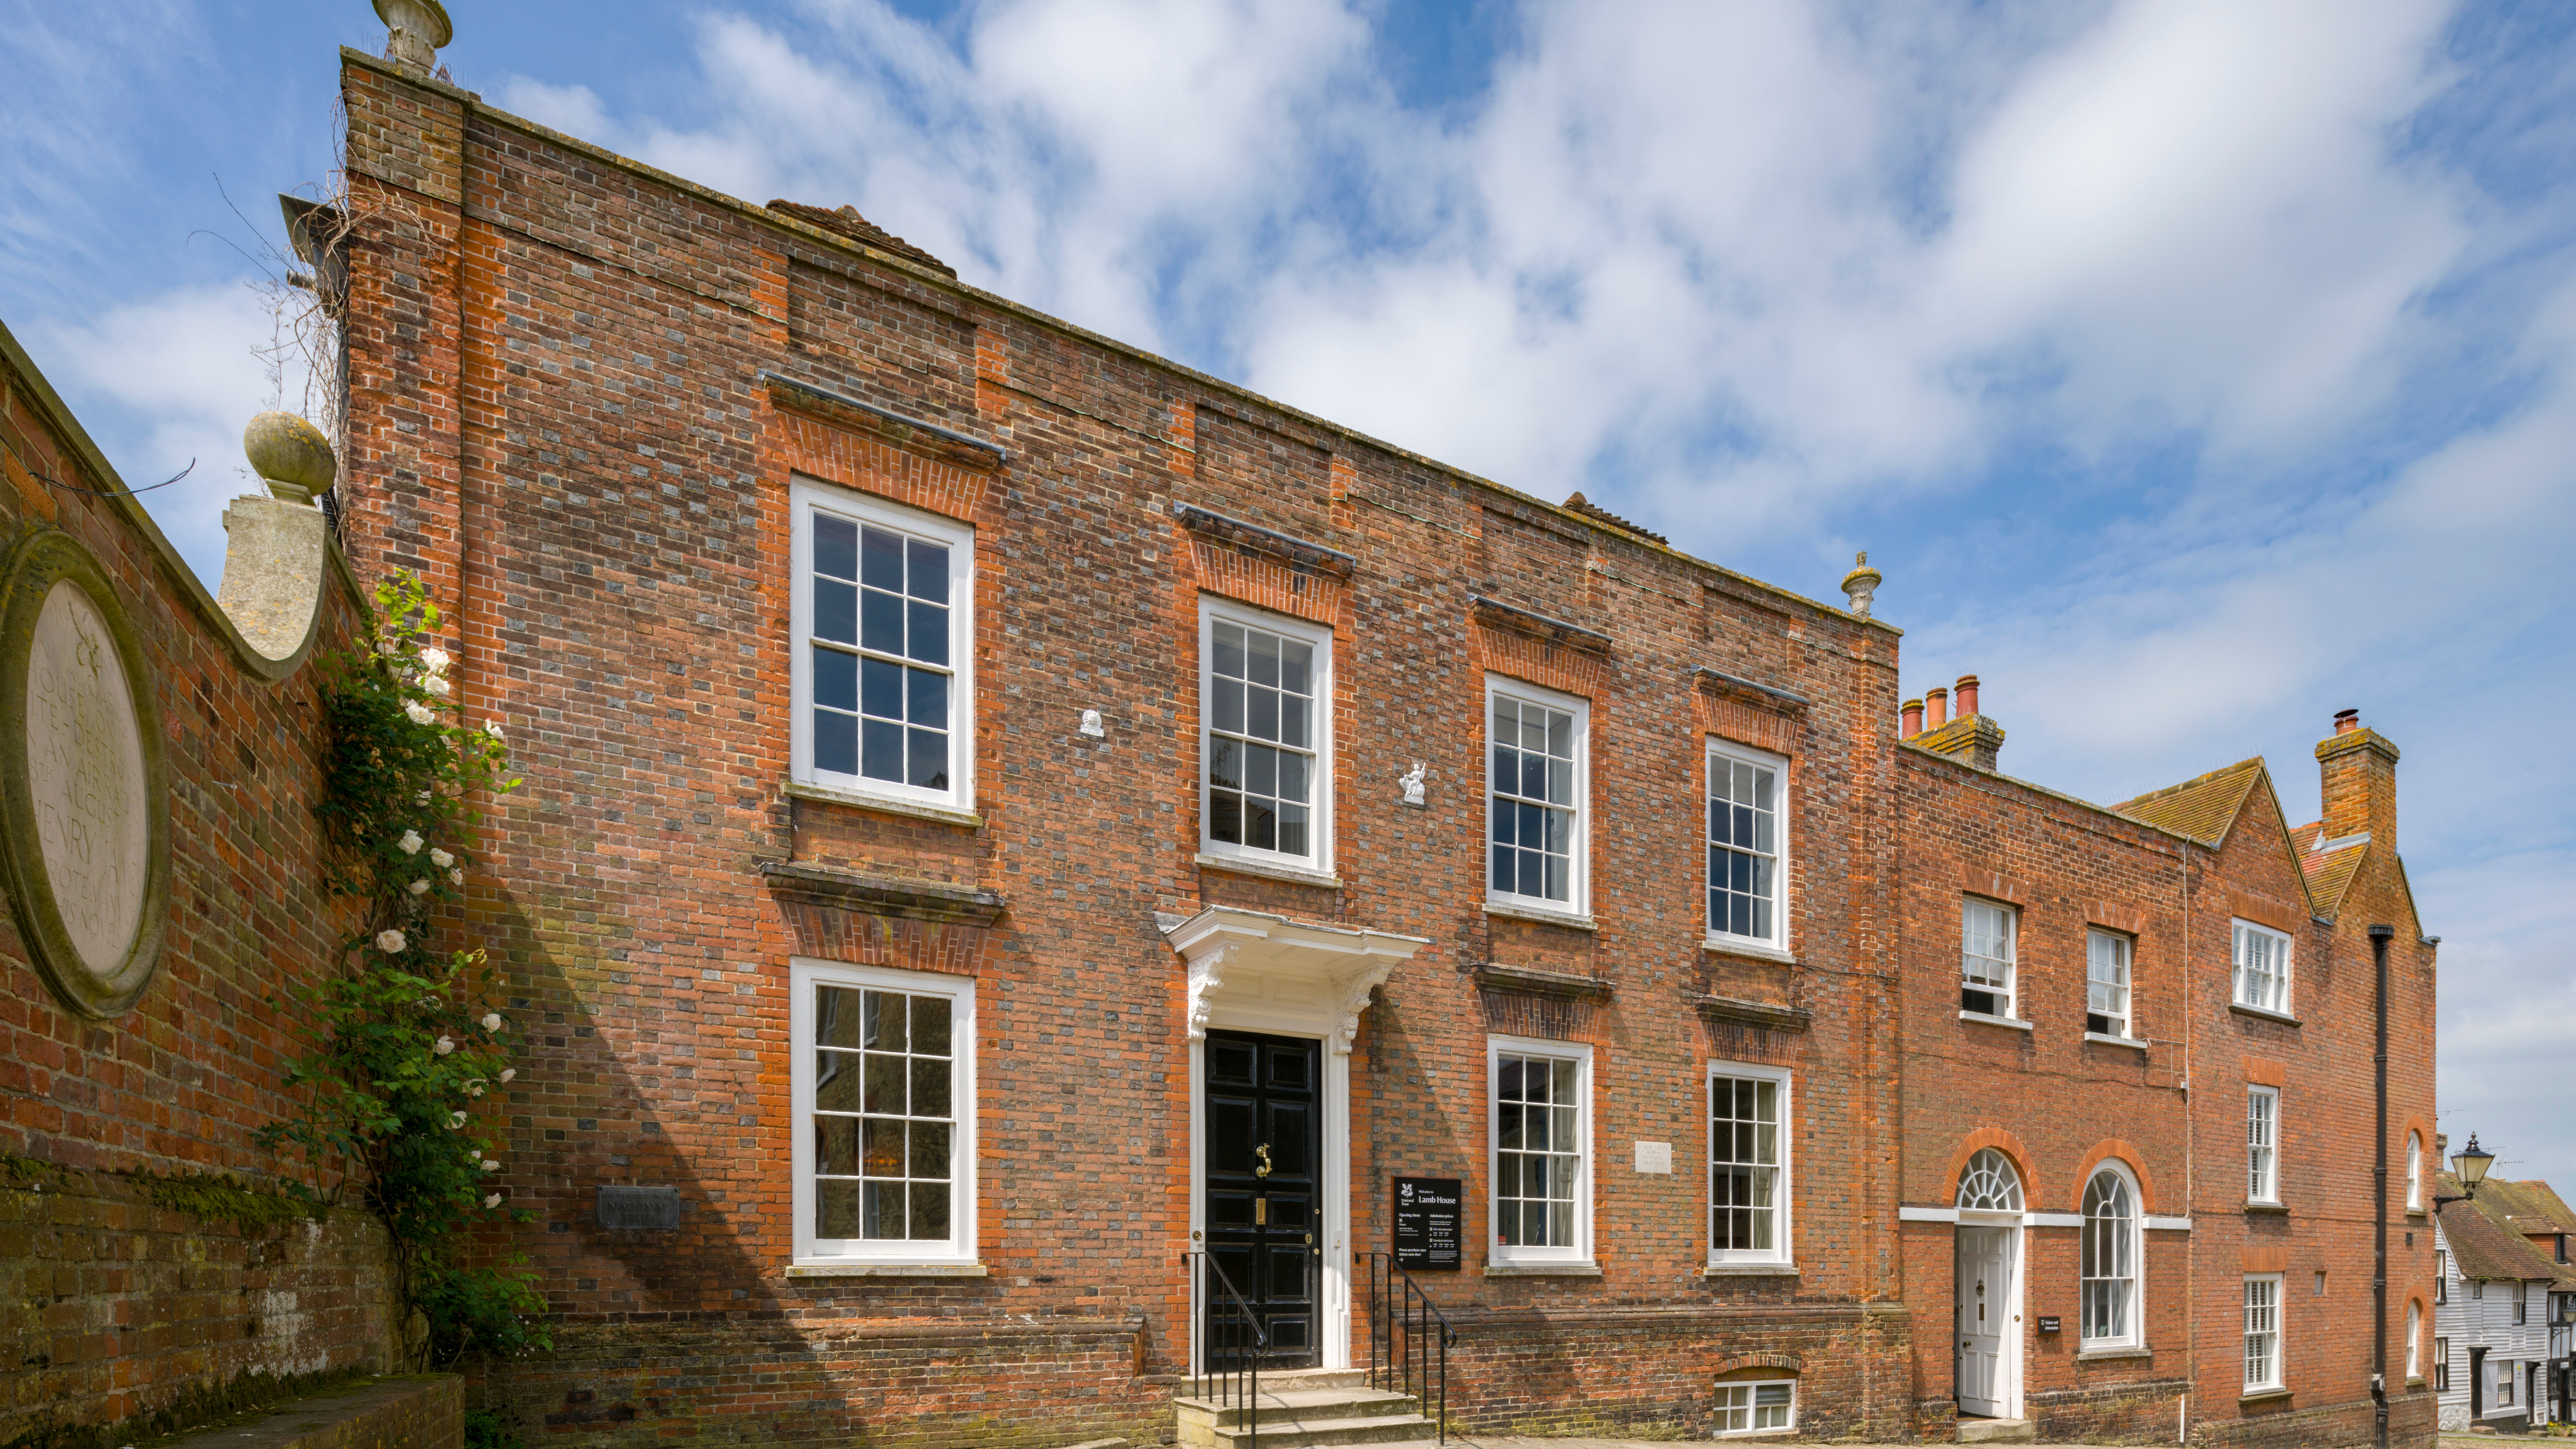 The facade of Lamb House in Rye